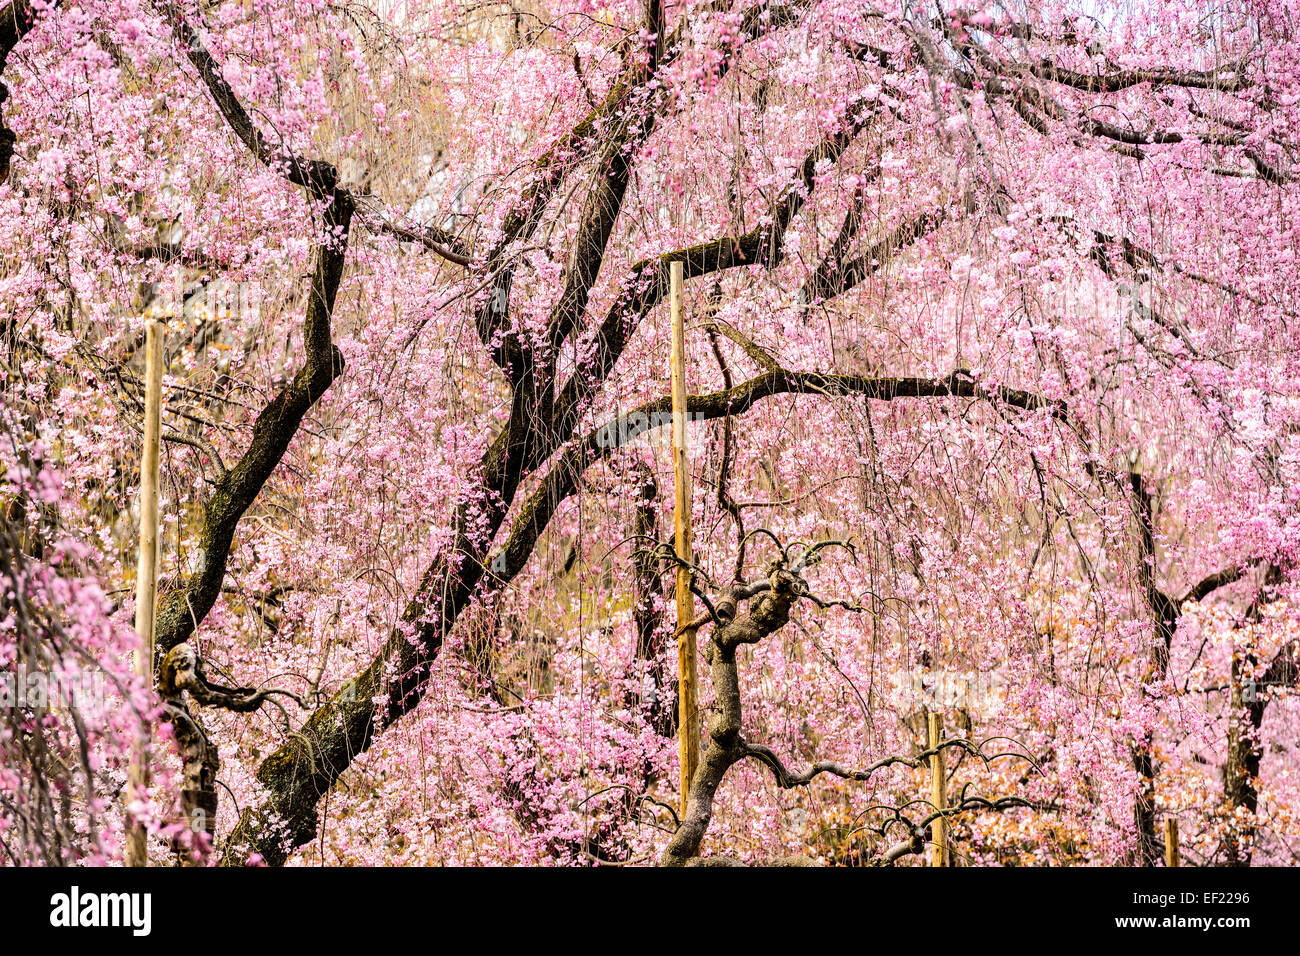 Cherry Trees in Kyoto, Japan. - Stock Image